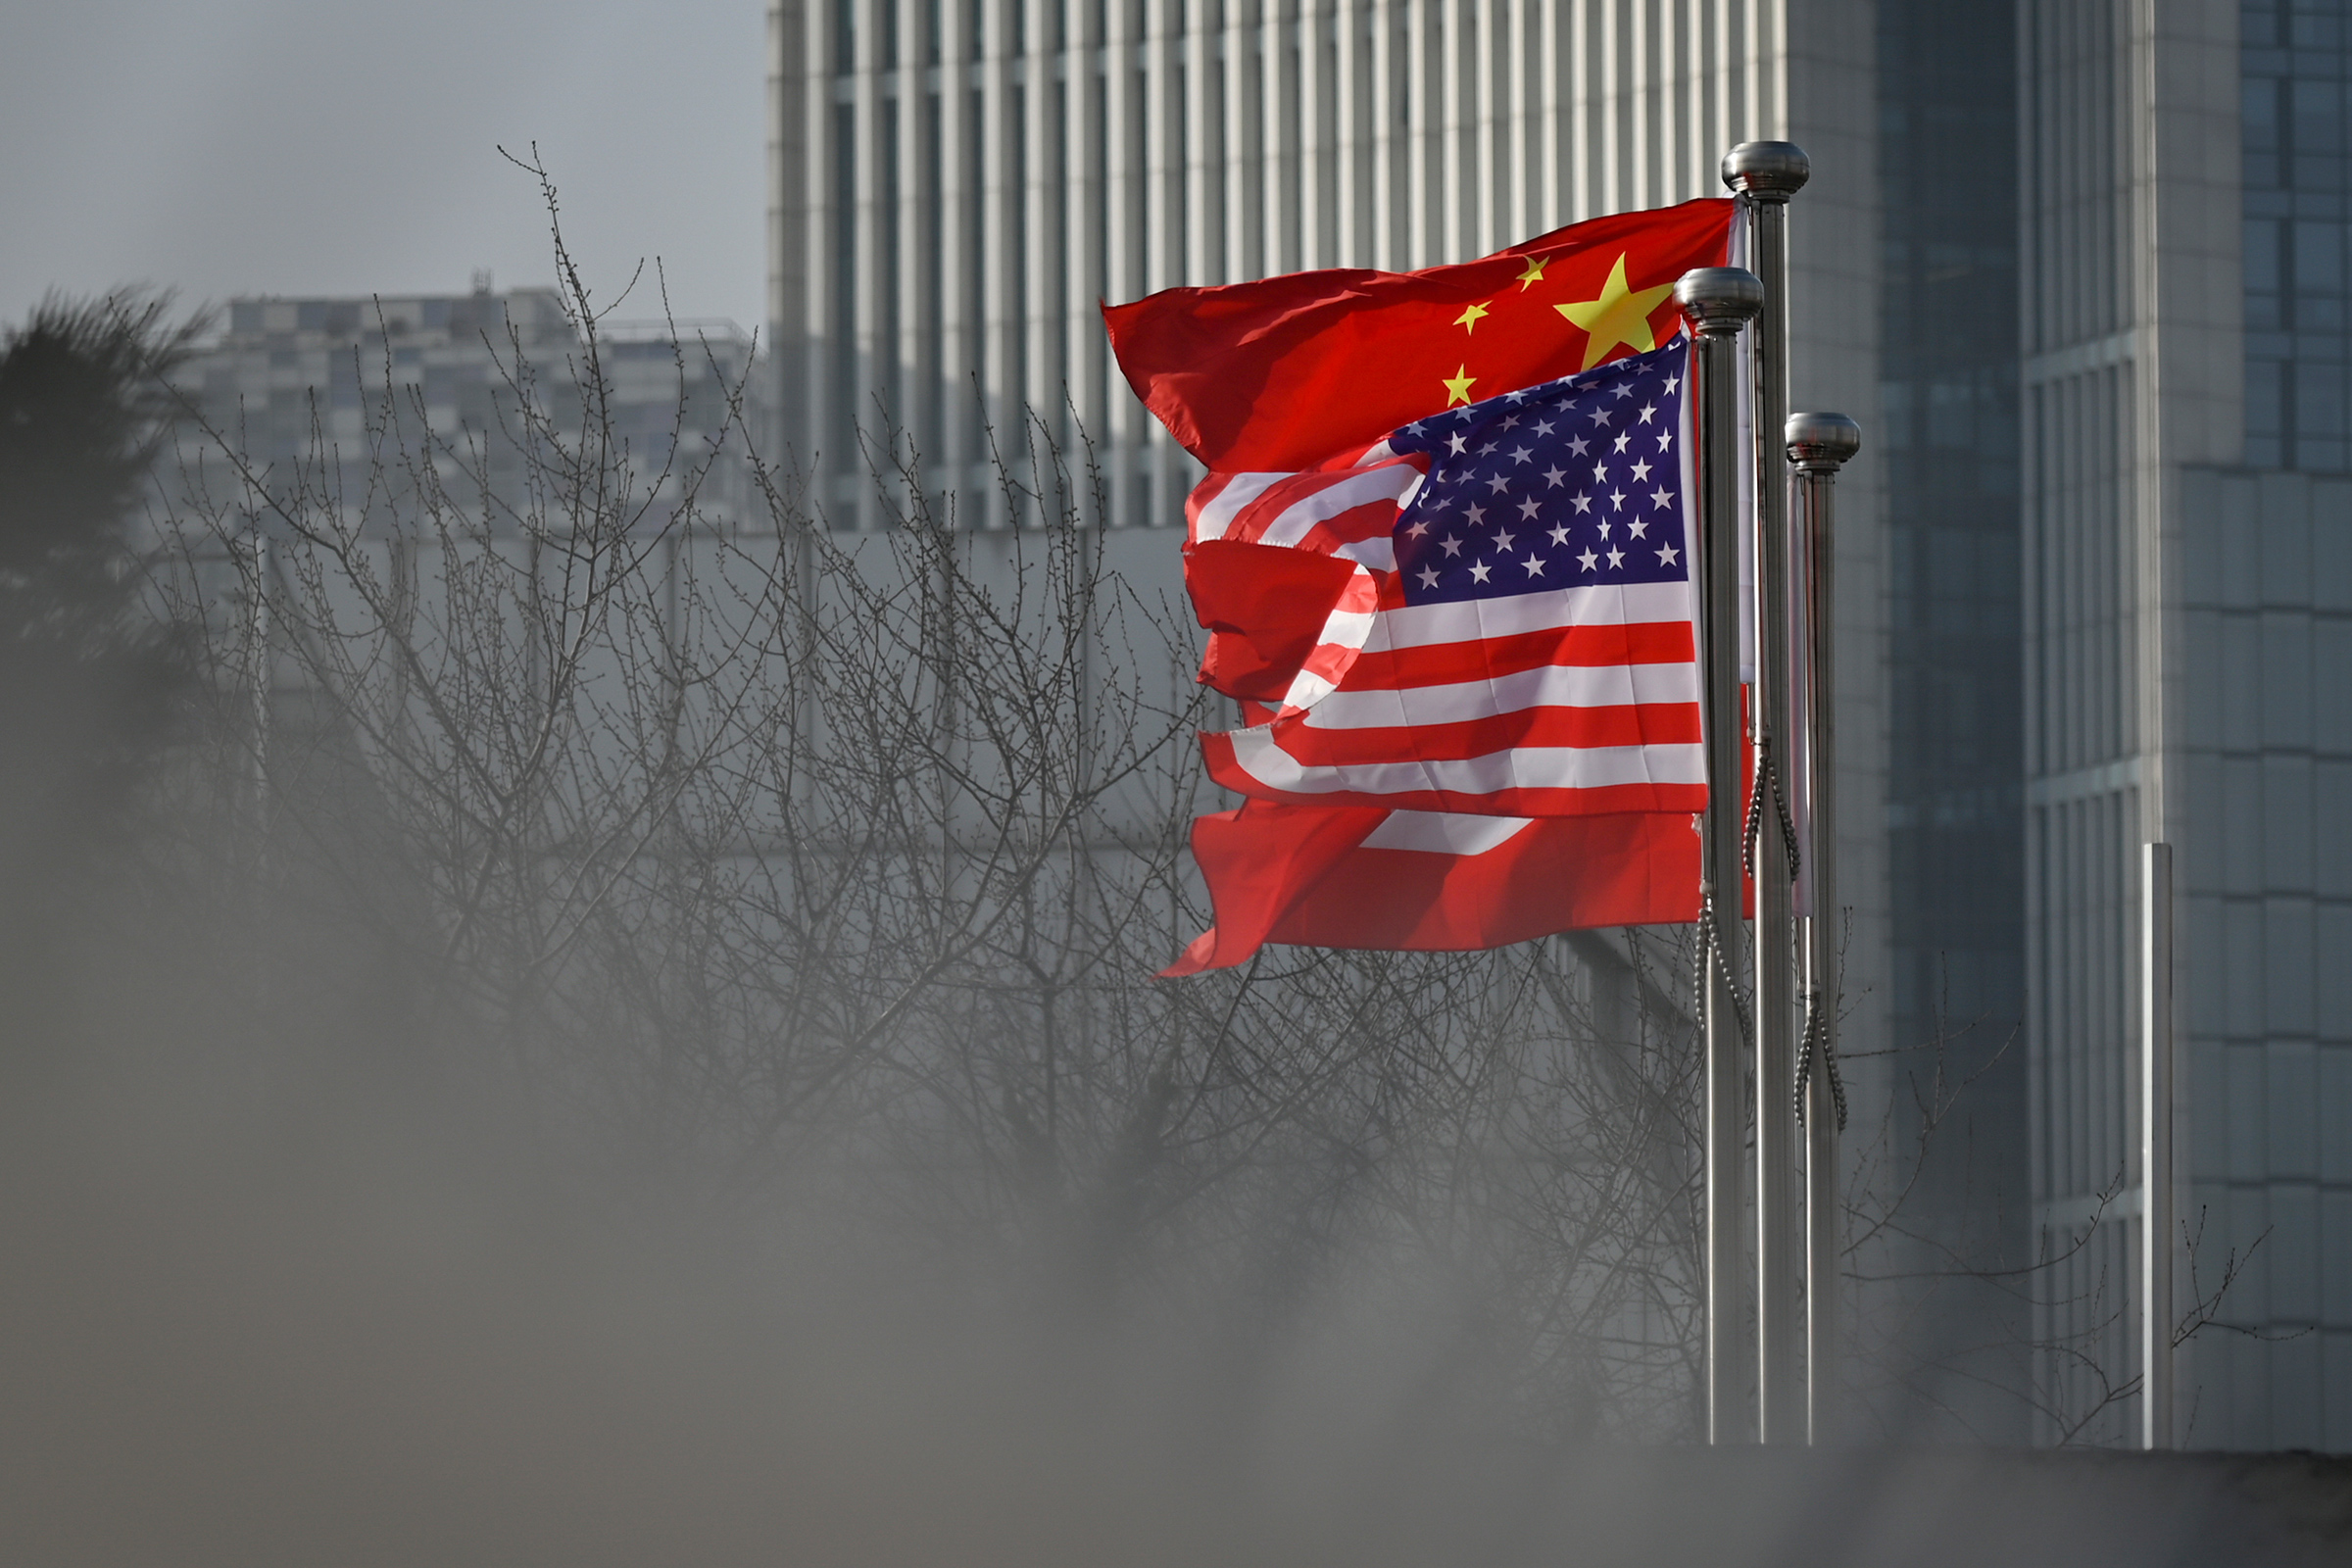 Chinese and U.S. national flags flutter at the entrance of an office building in Beijing on Jan. 19, 2020.